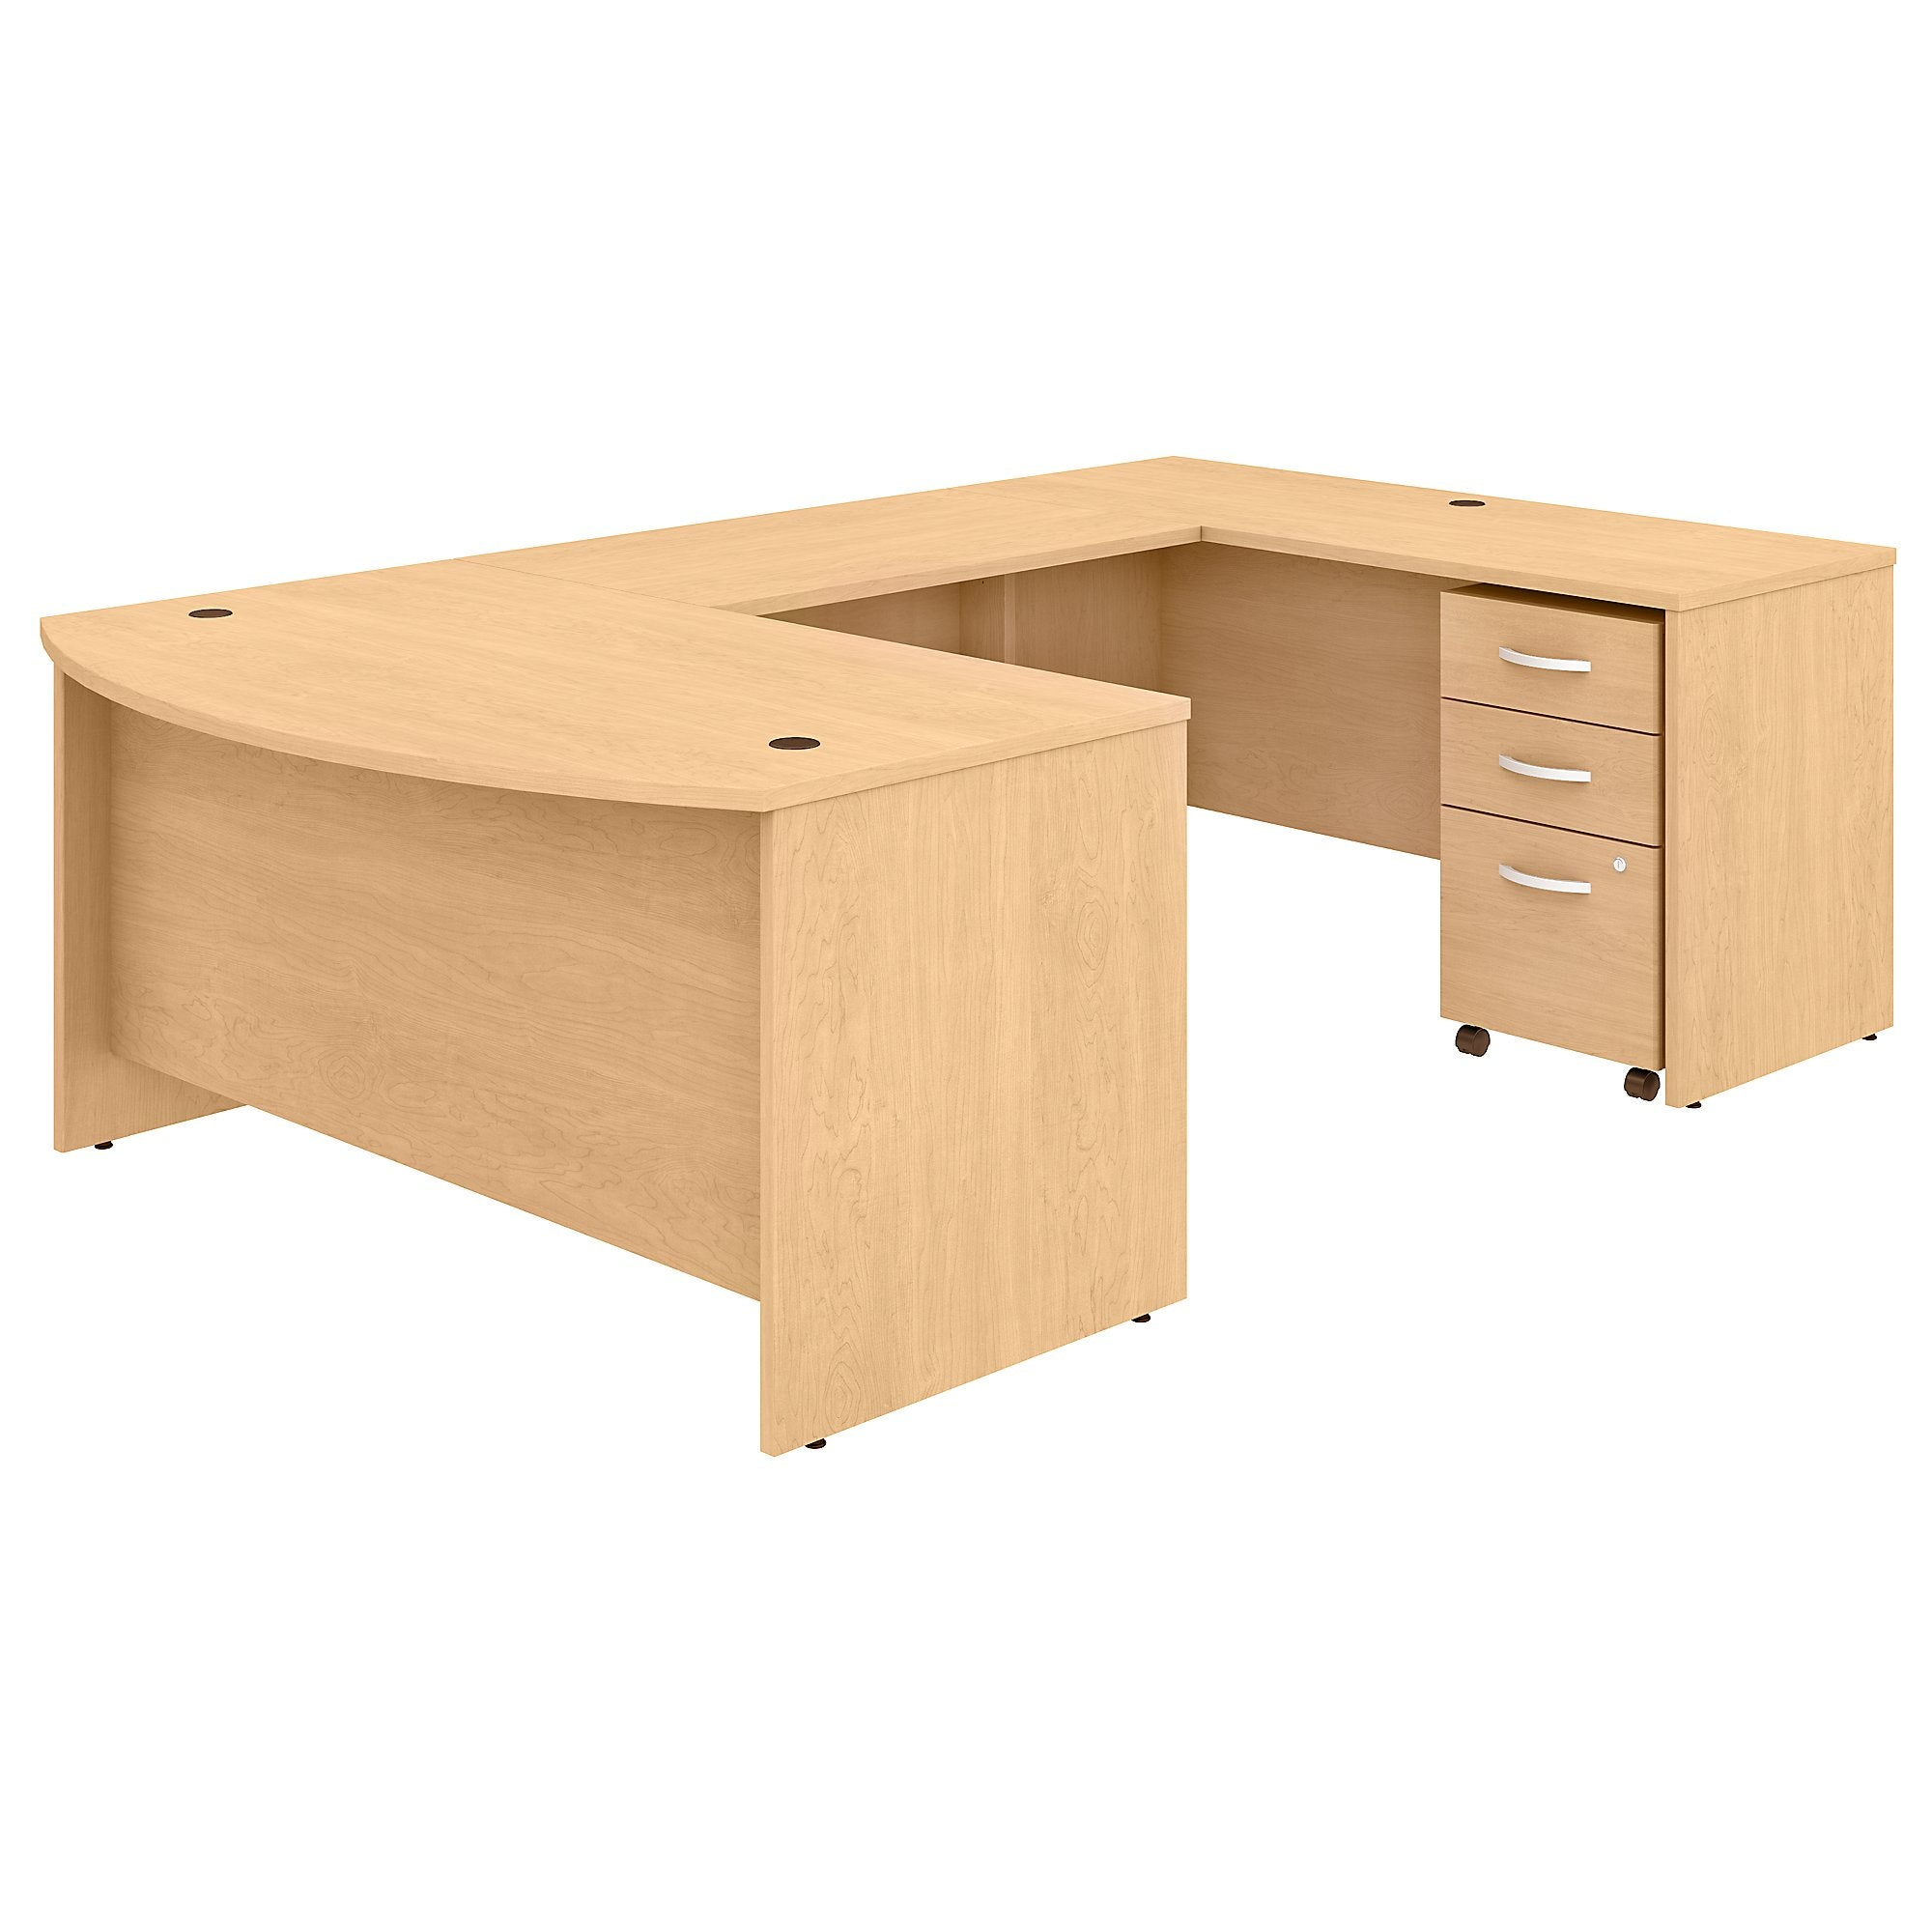 Studio C 60W x 36D U Shaped Desk with Mobile File Cabinet